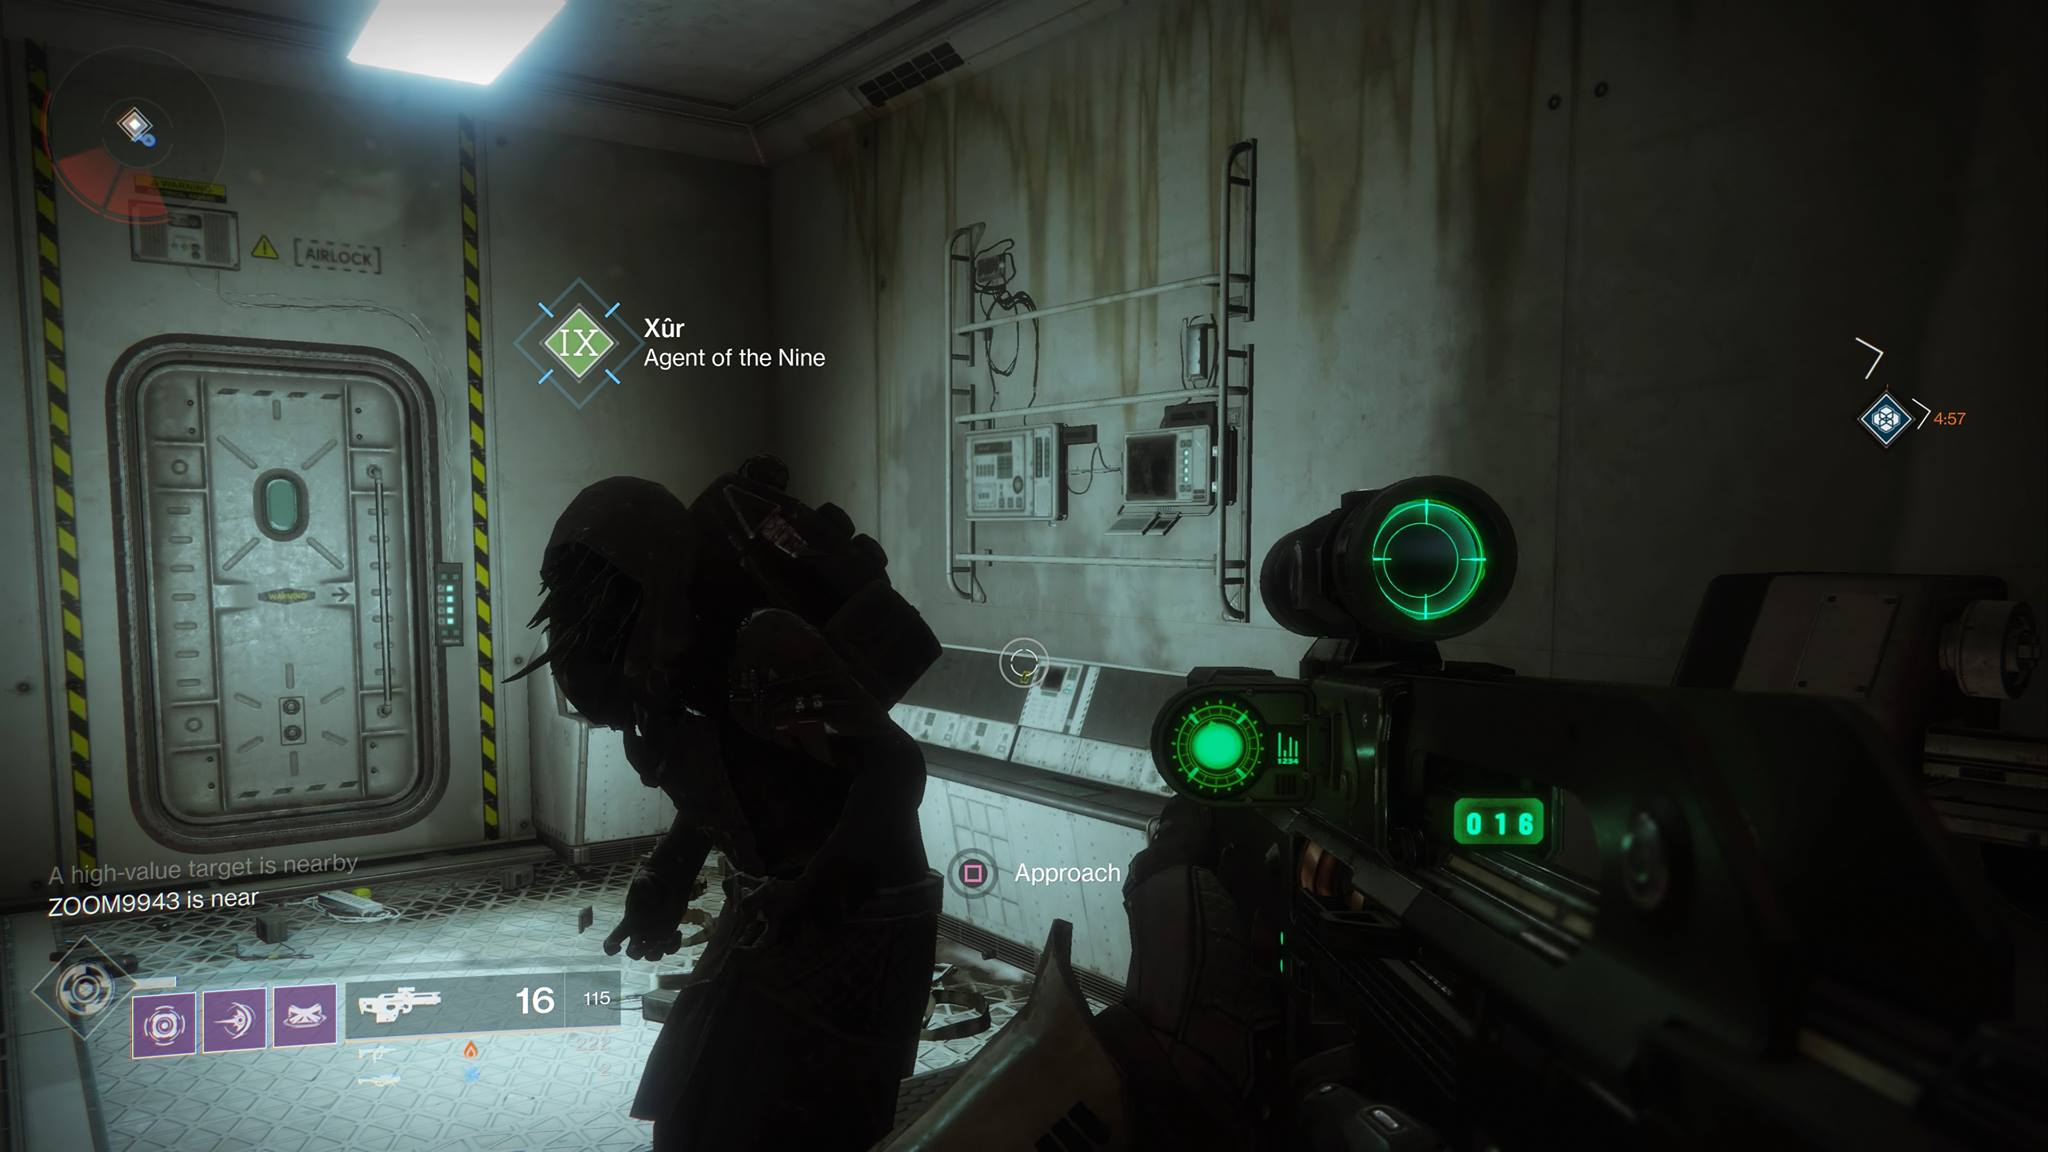 Xur Destiny 2 Xur Location And Inventory For September 22 24